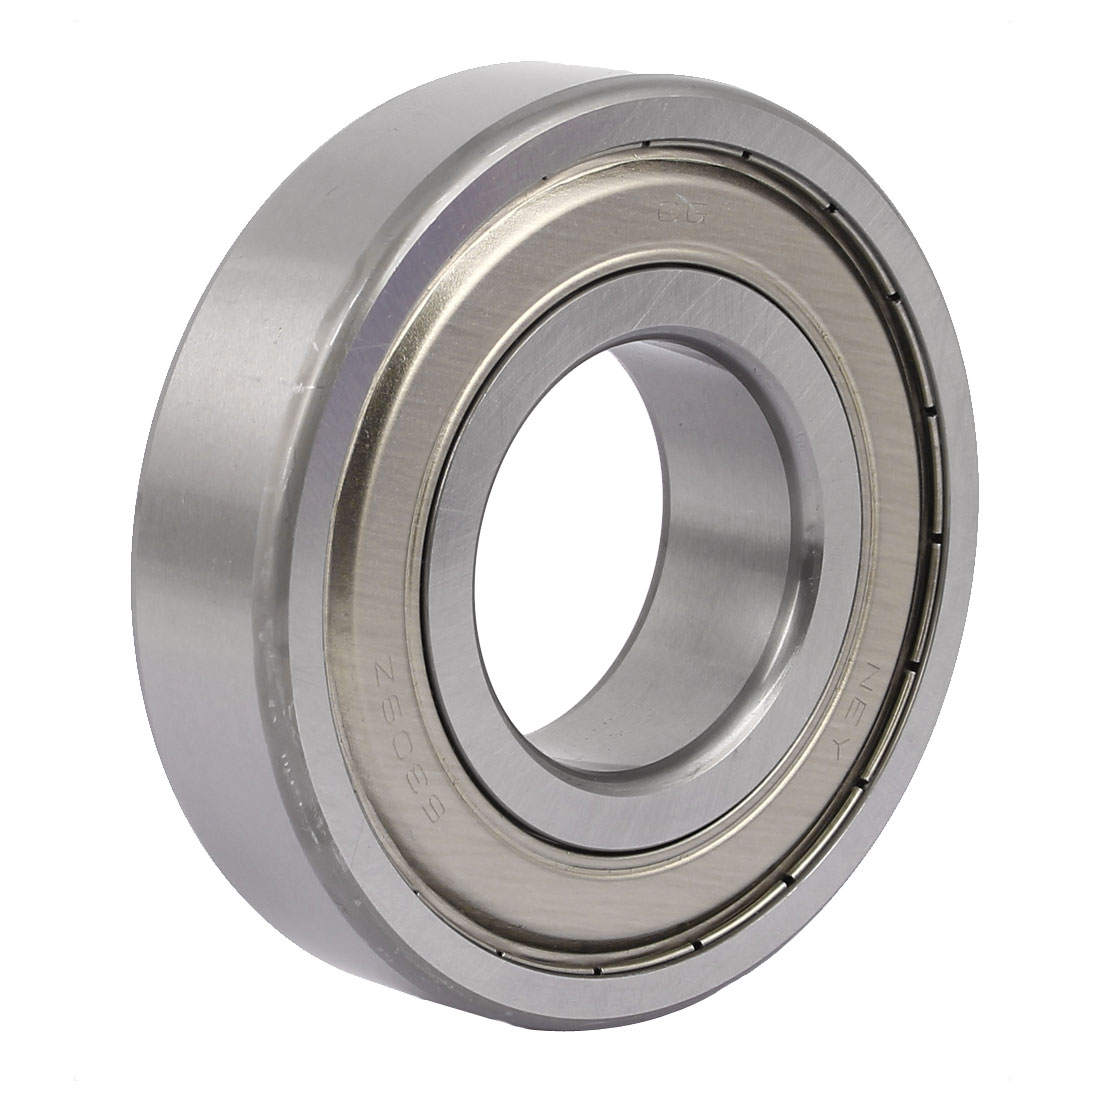 25mm x 45mm x 100mm Shielded Radial Miniature Deep Groove Ball Bearing